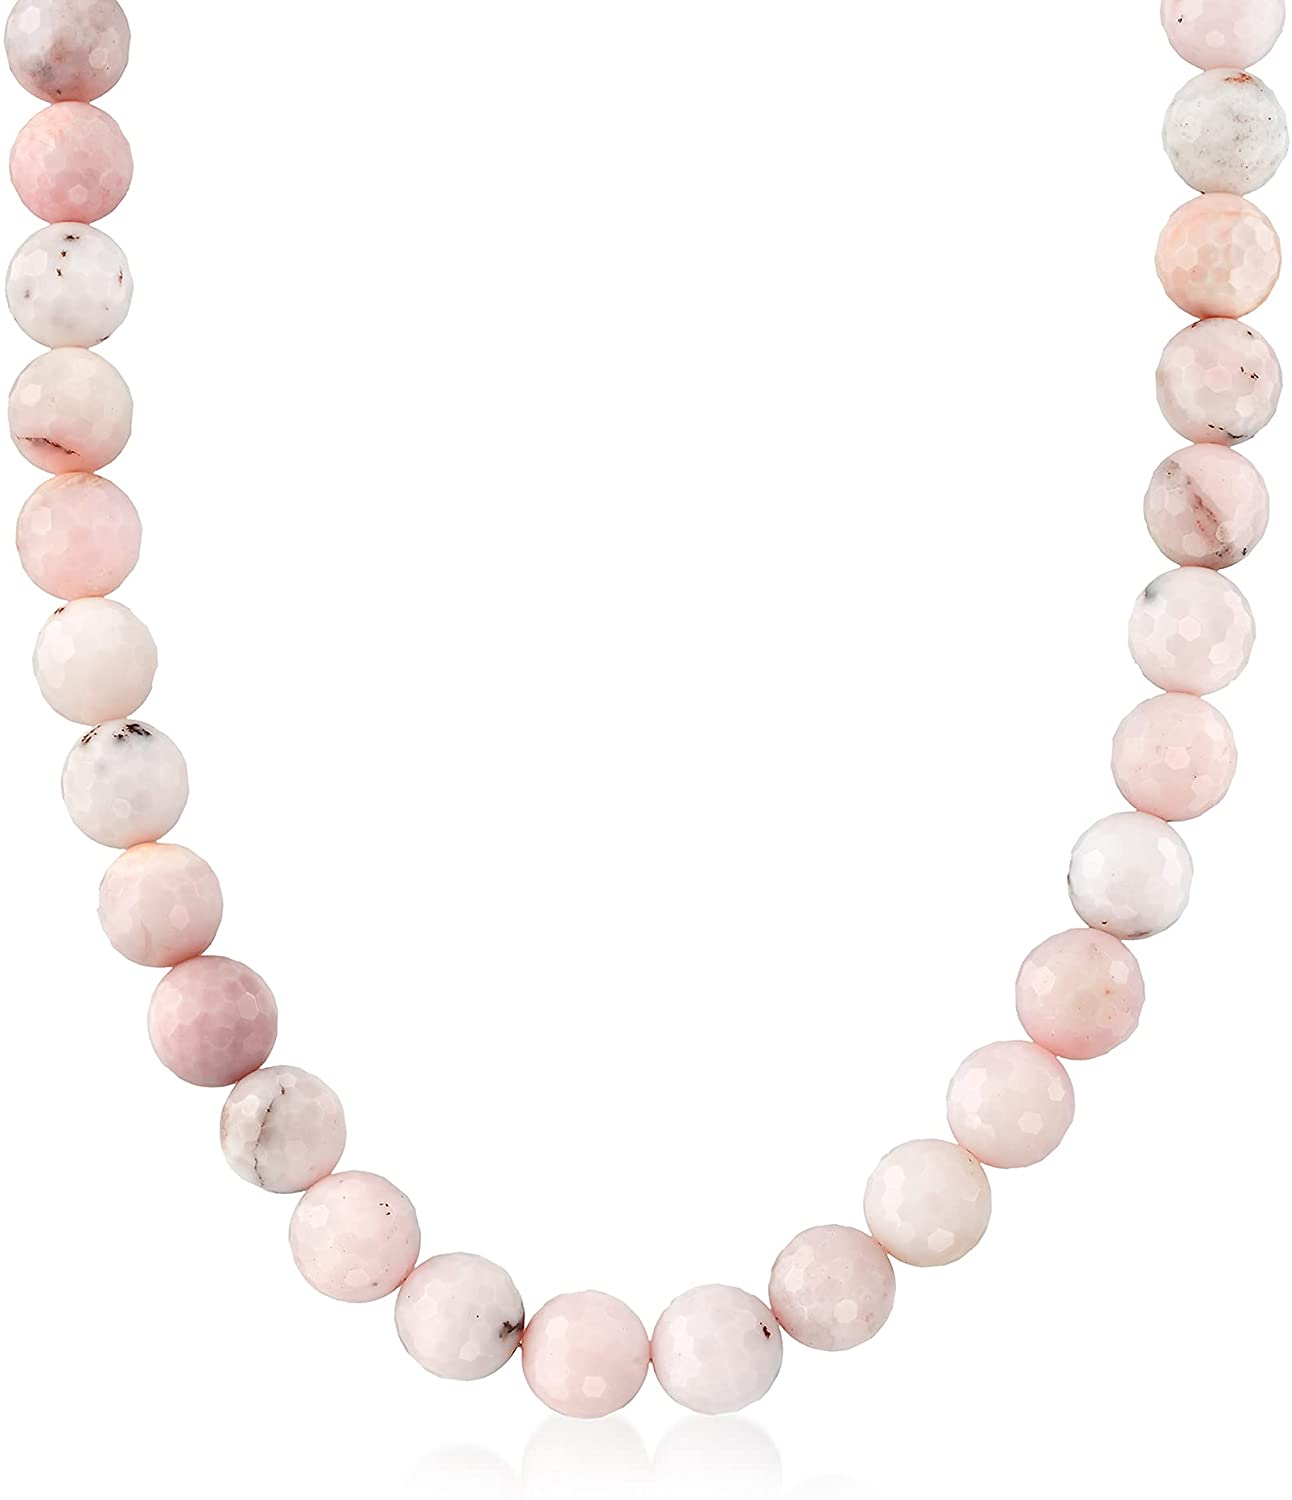 Ross-Simons 12mm Pastel Recommended Pink New arrival Opal With Sterling Bead Necklace Si